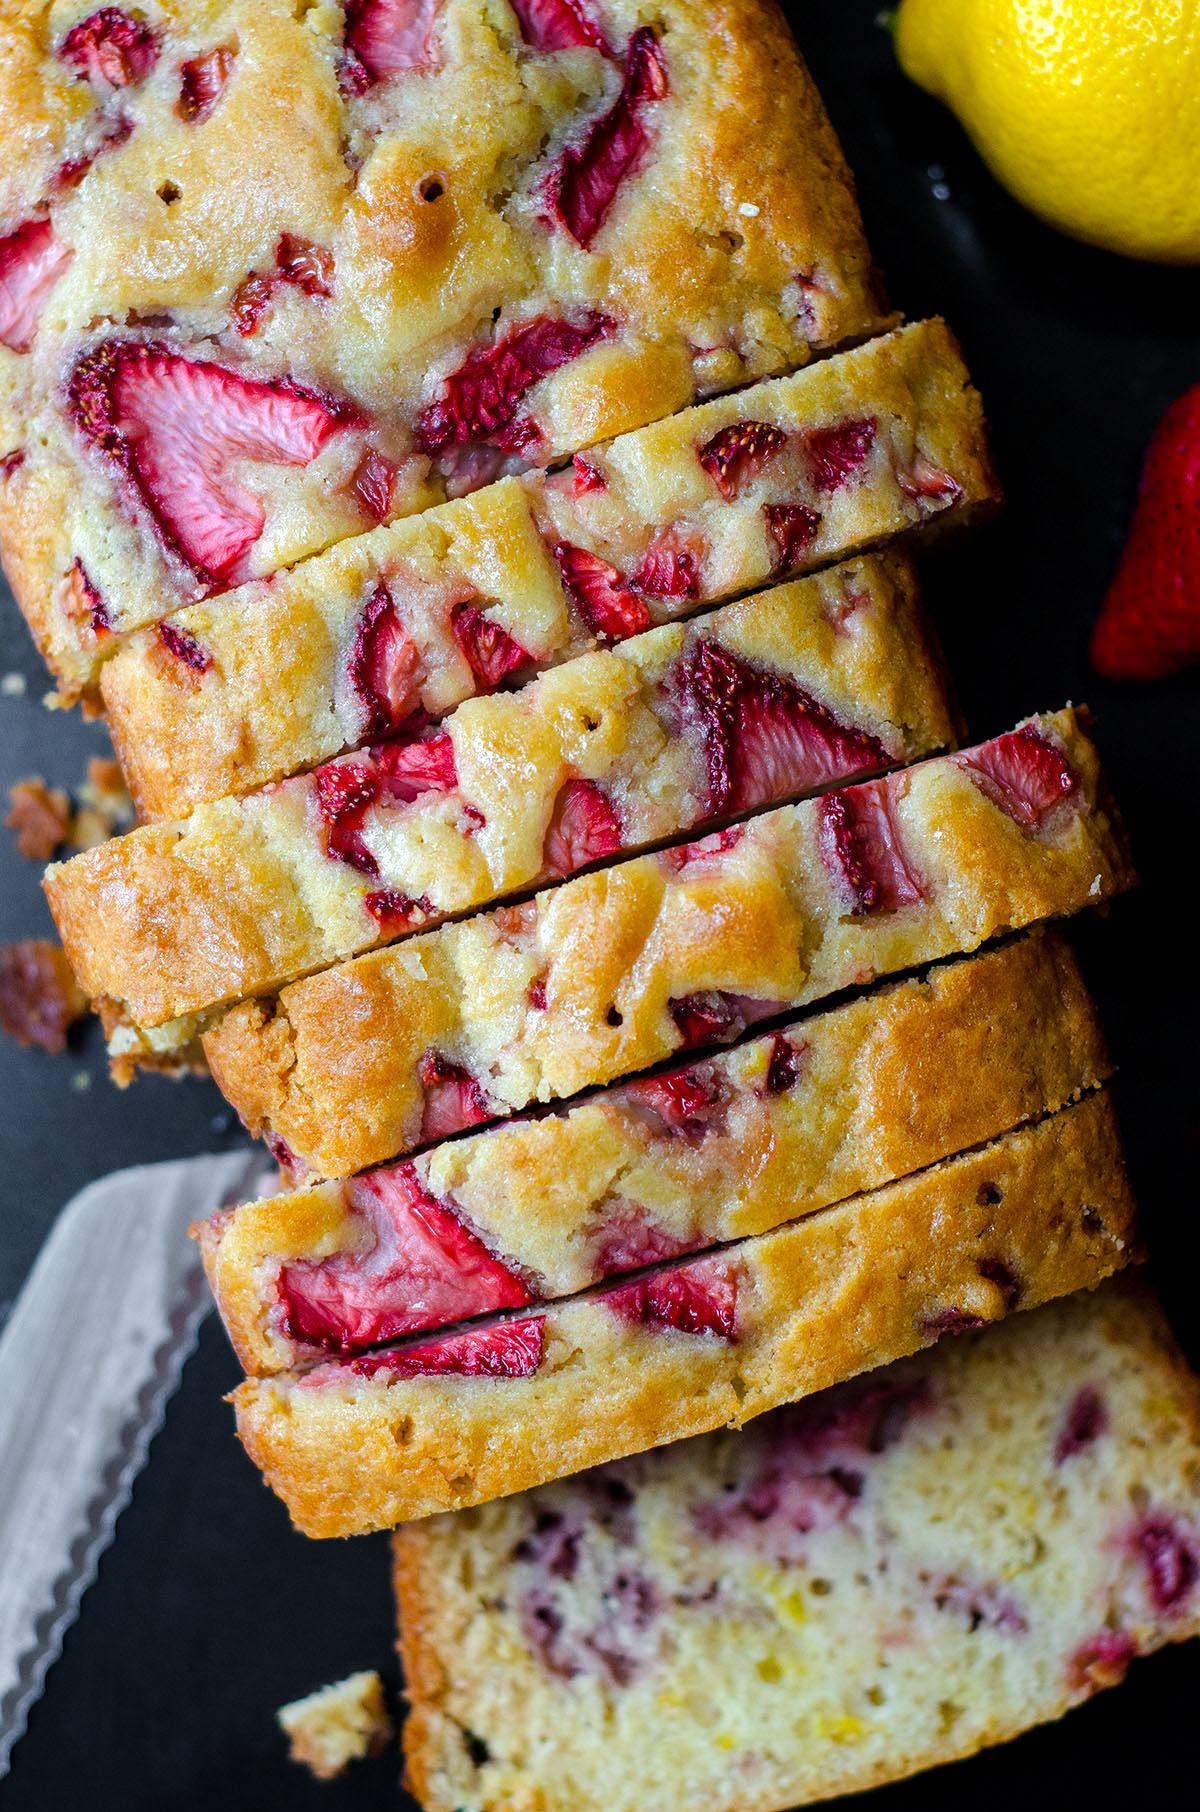 A simple quick bread loaded with strawberries and covered in a lemonade glaze. Perfect for summer!